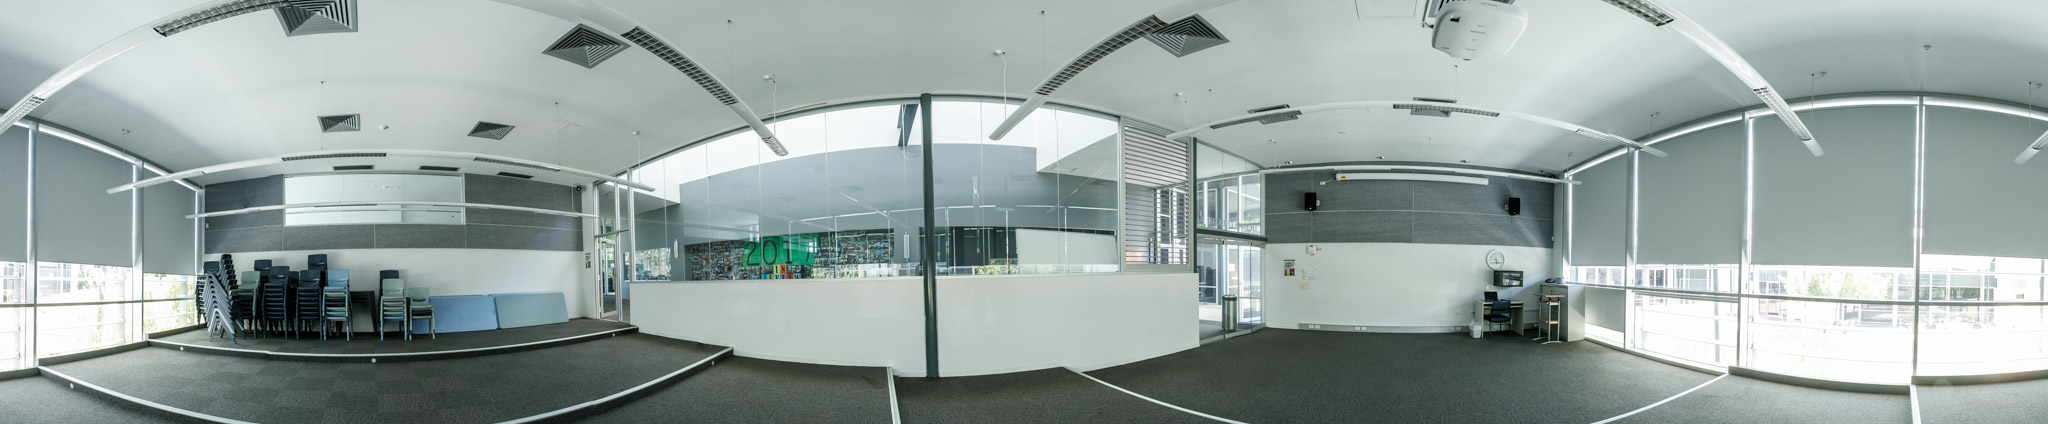 Perth Modern School | Information | Venue Hire